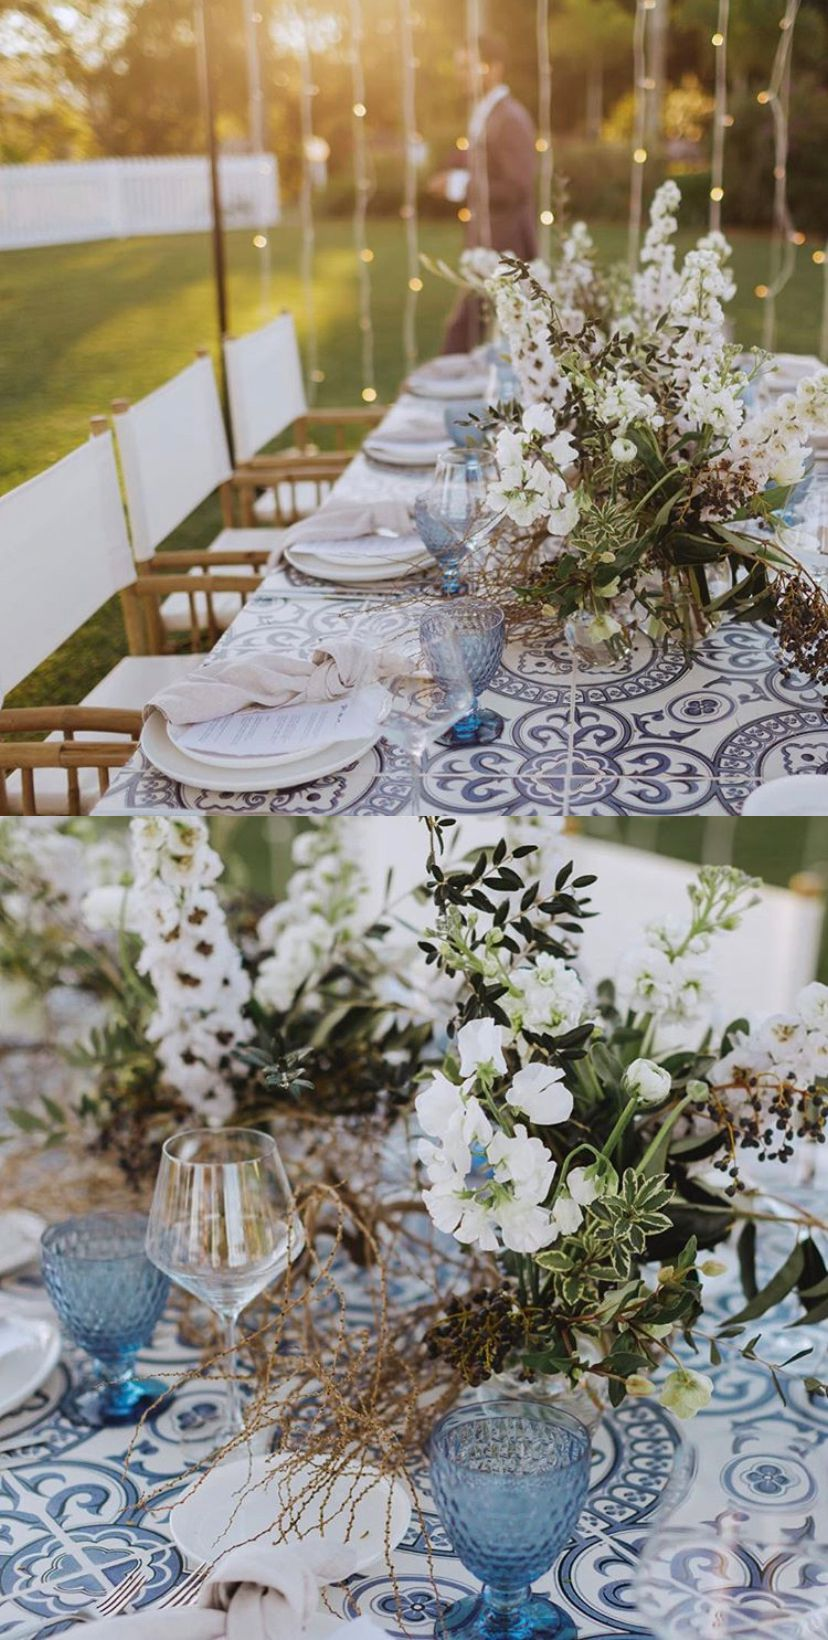 Perfect Party Co. Brisbane, Australia • Tablescape • Table Runner using Heritage Tiles Wallpaper by Milton & King for a wedding